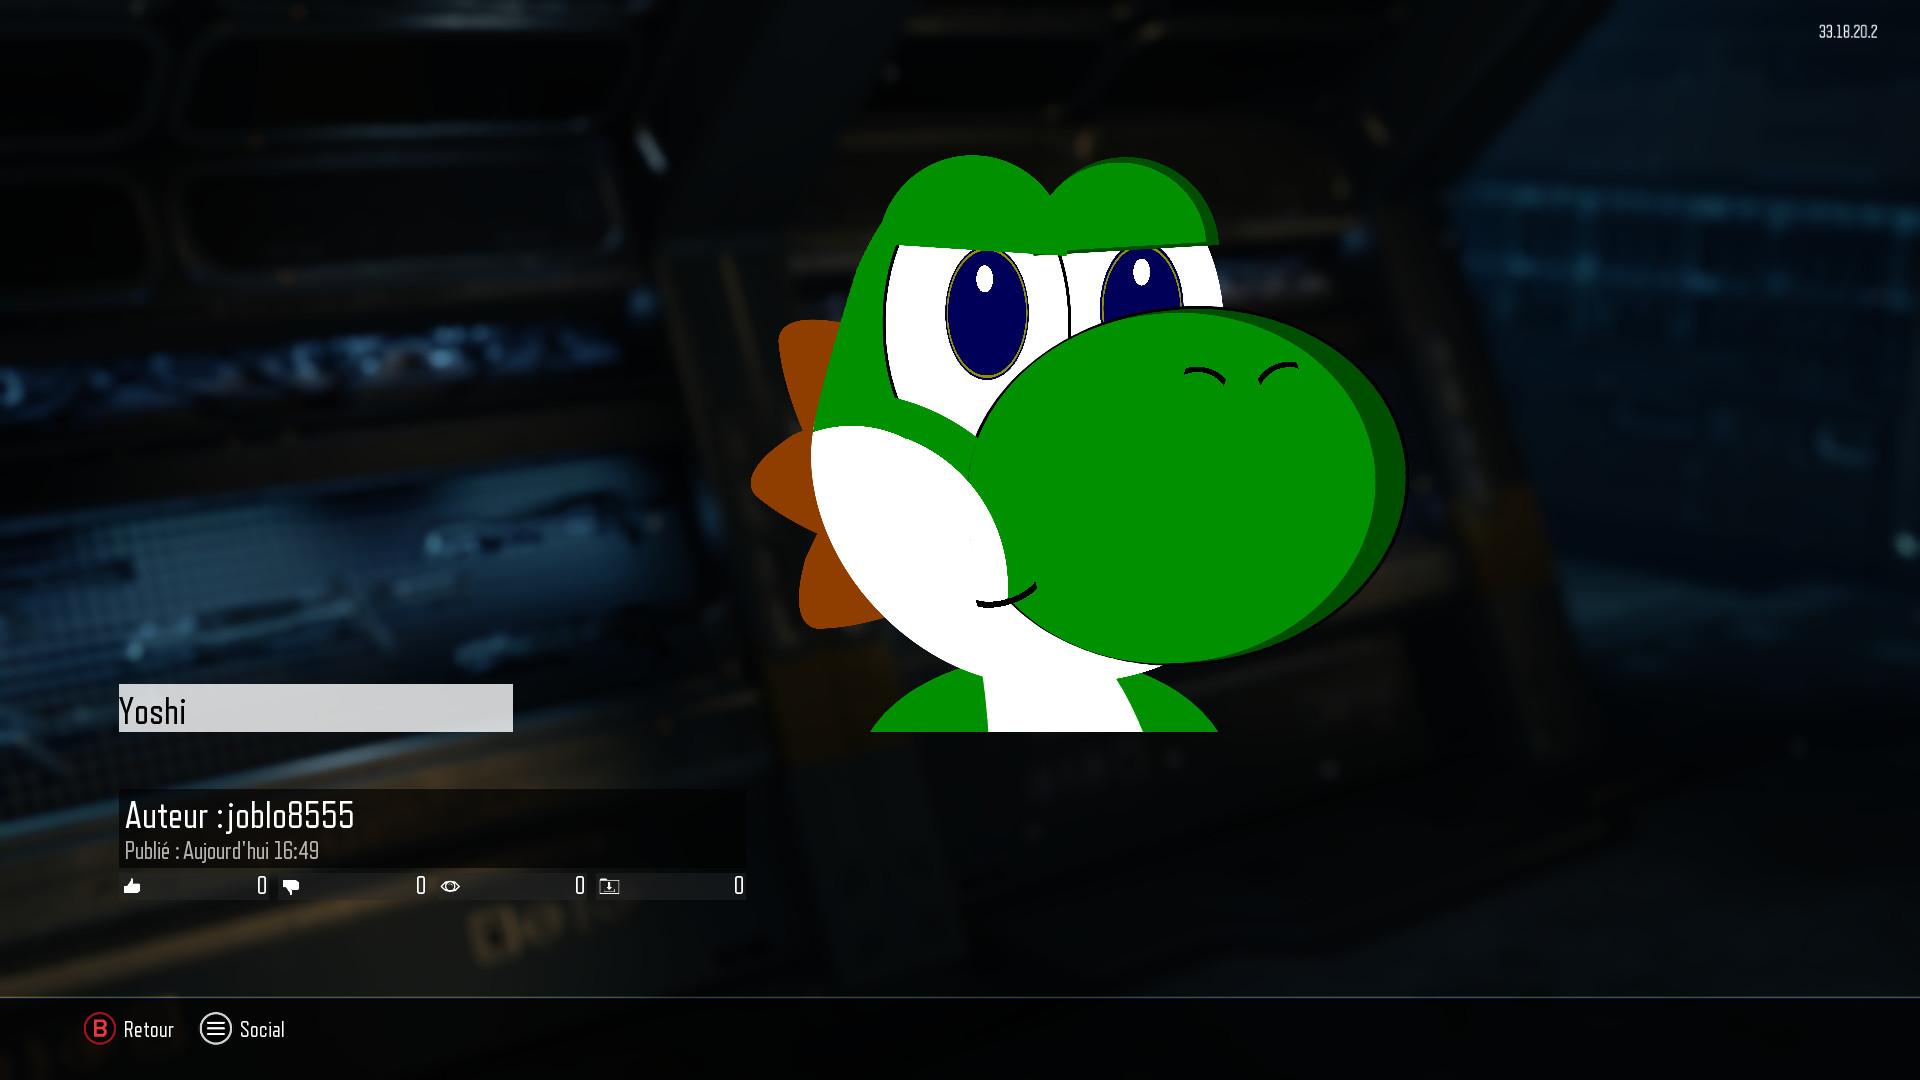 1920x1080 Yoshigamer images Yoshi embleme Bo3 HD wallpaper and background photos